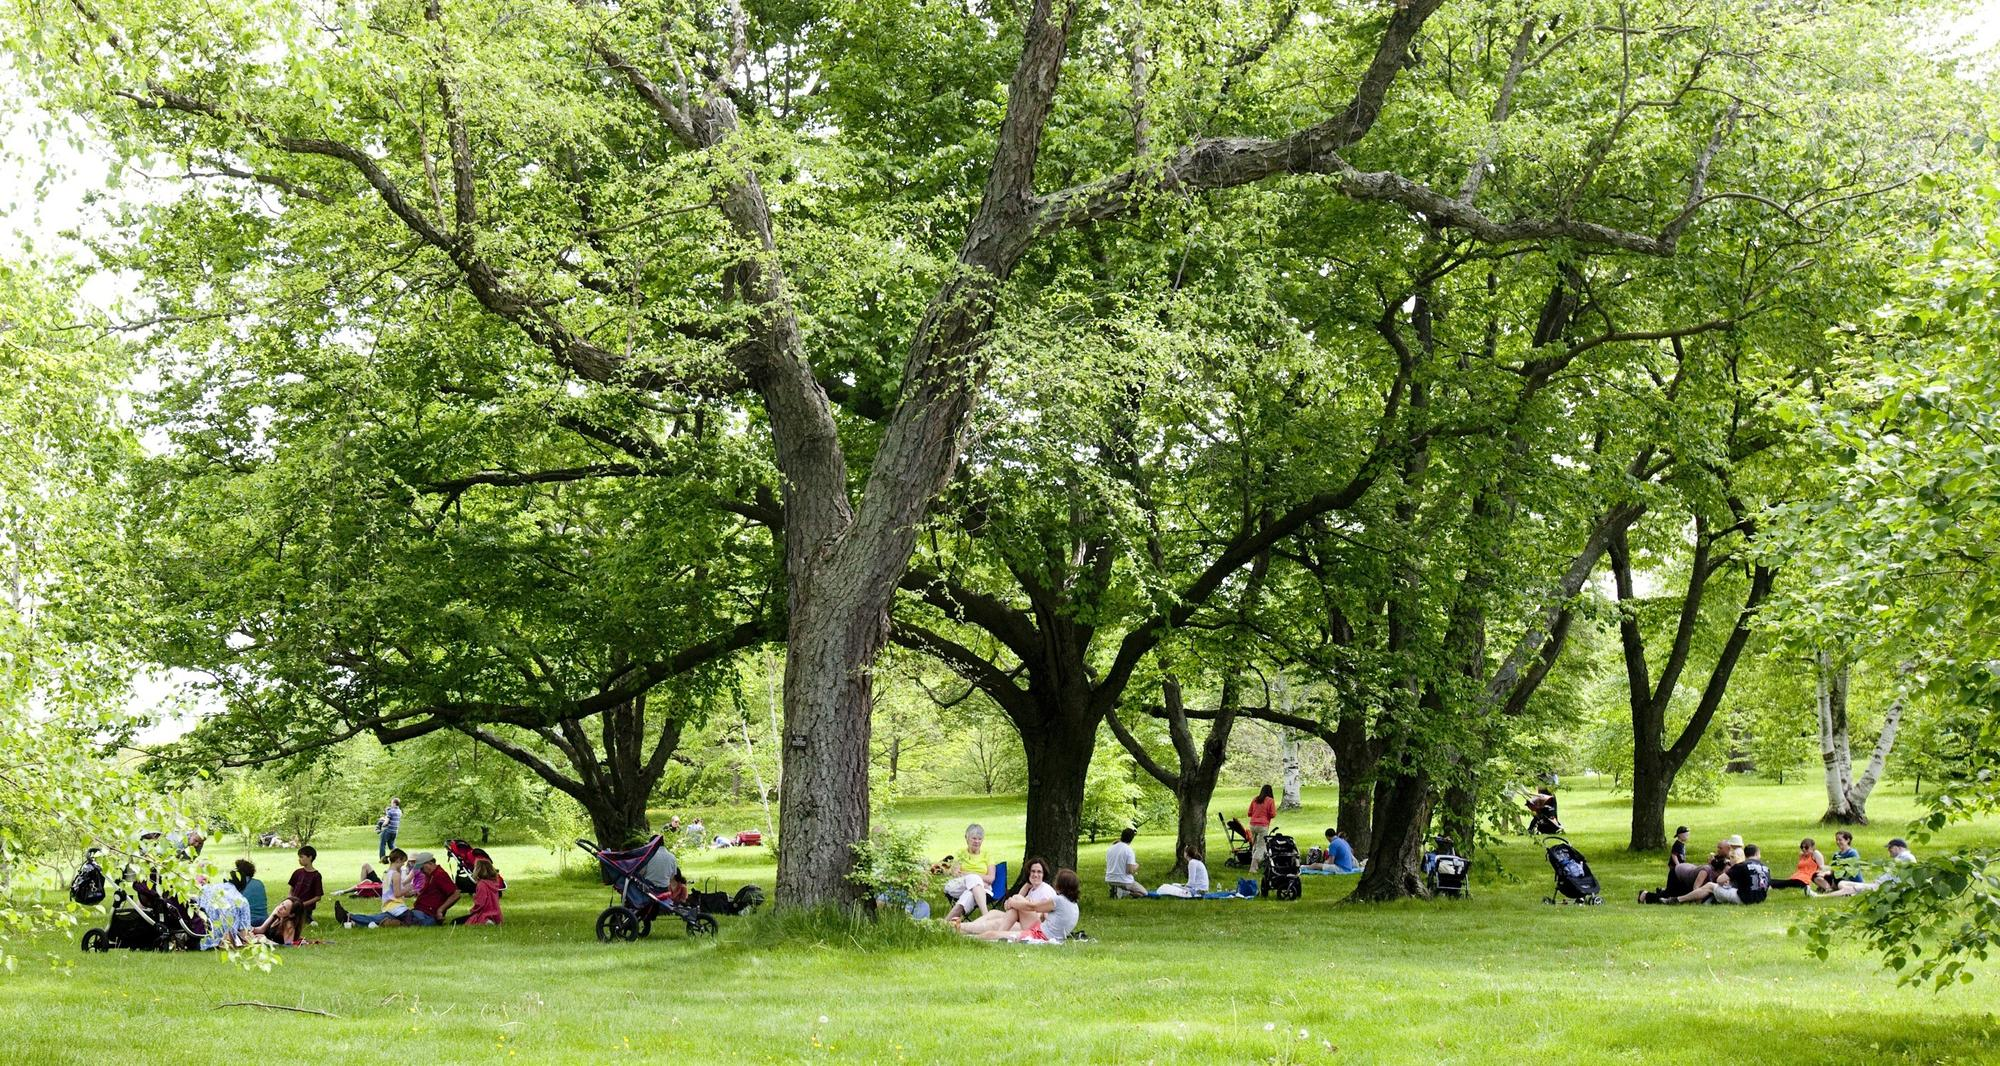 People sitting on the grass